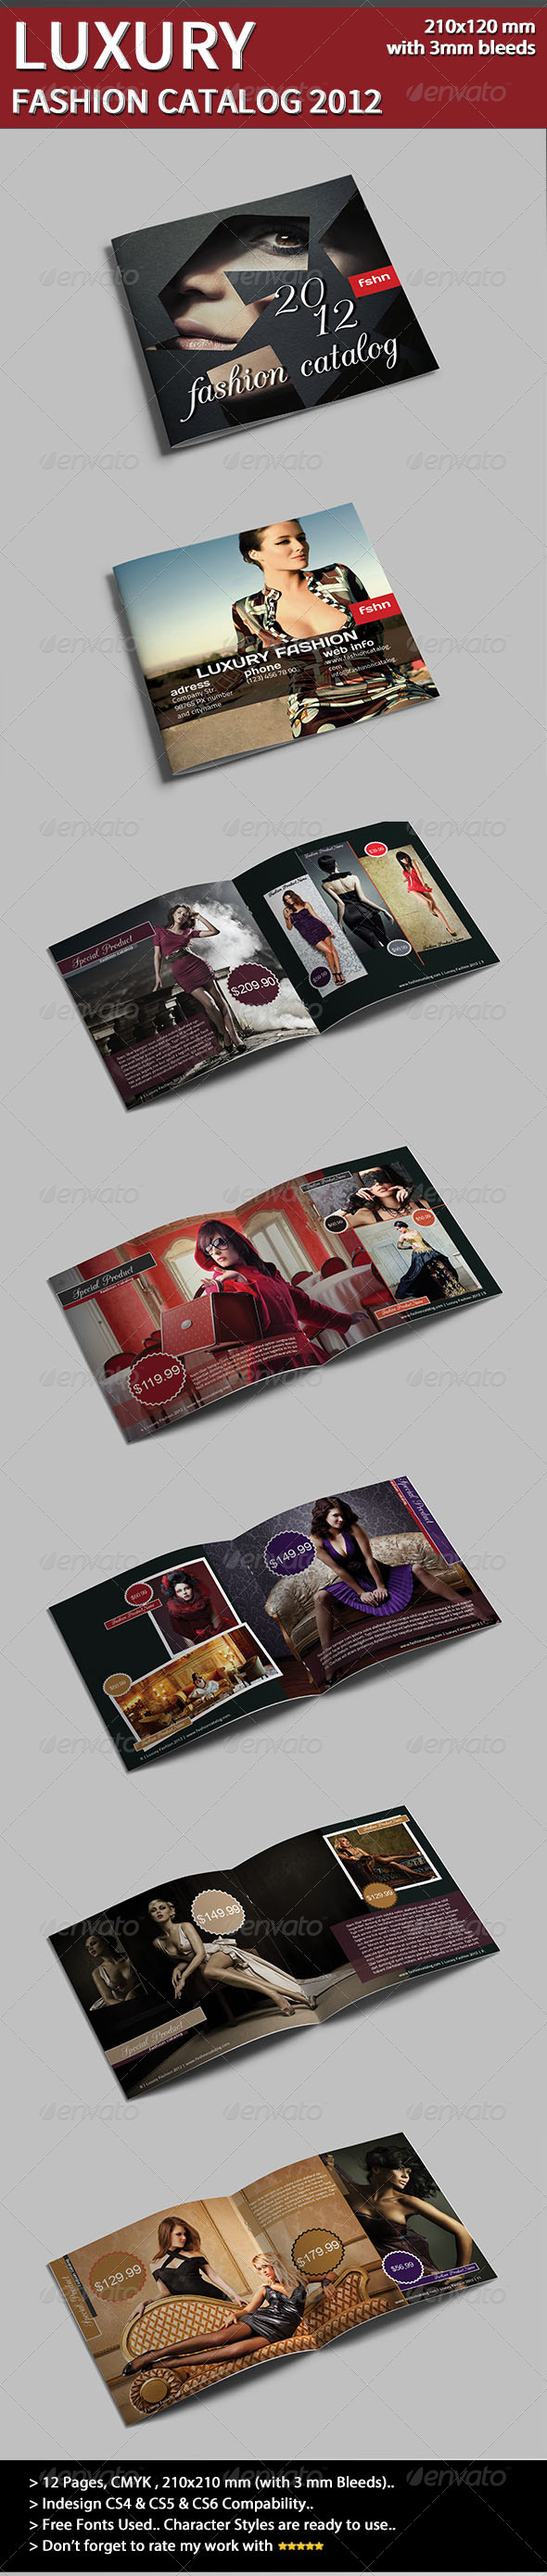 Luxury Fashion Catalog - Catalogs Brochures